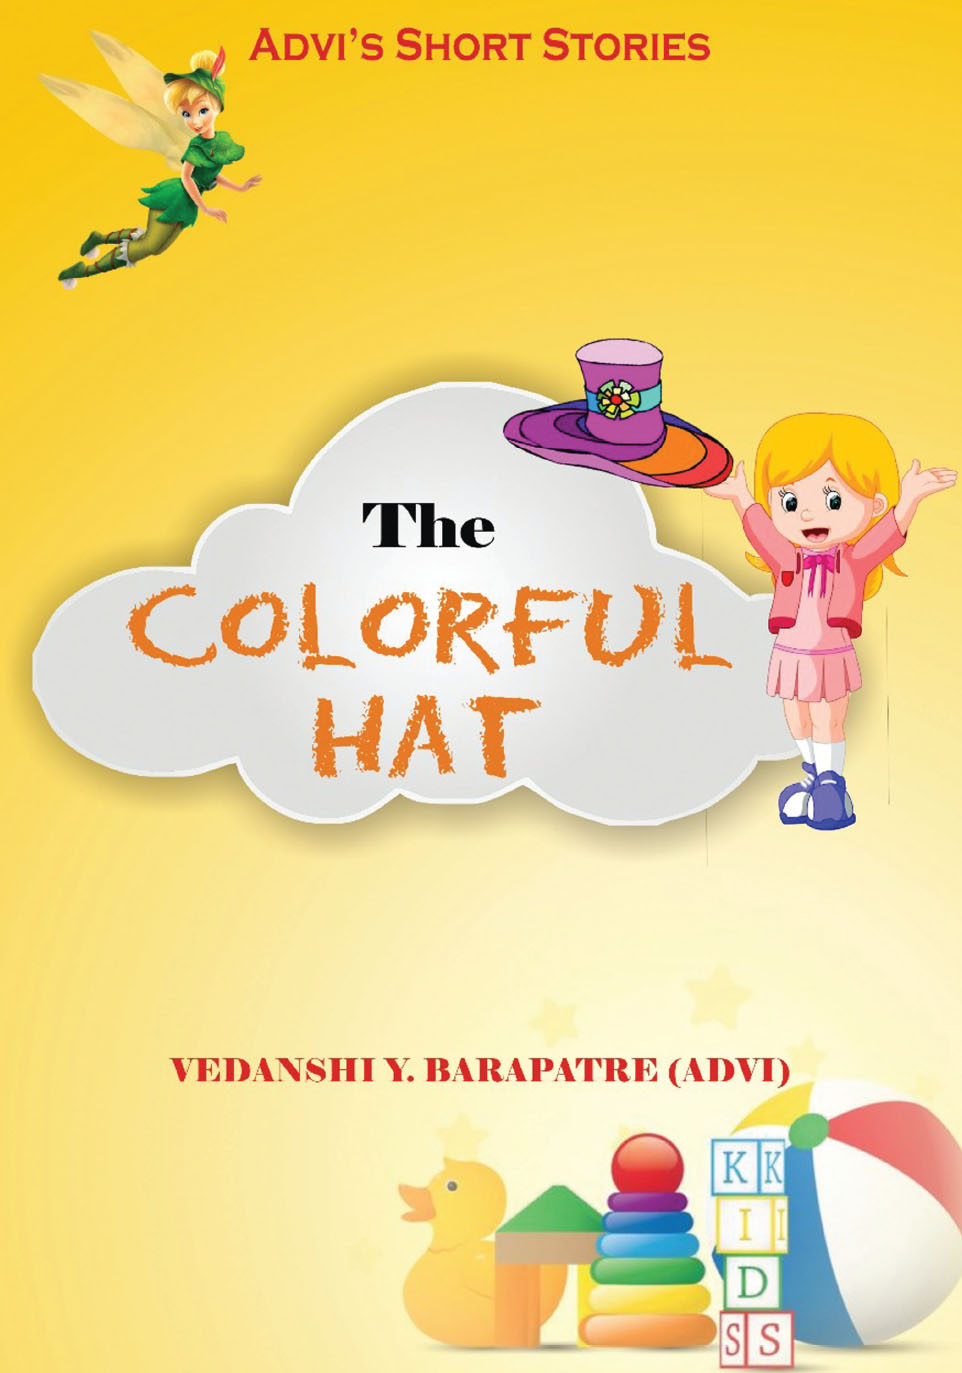 The Colorful Hat By Vedanshi Y. Barapatre (Advi)